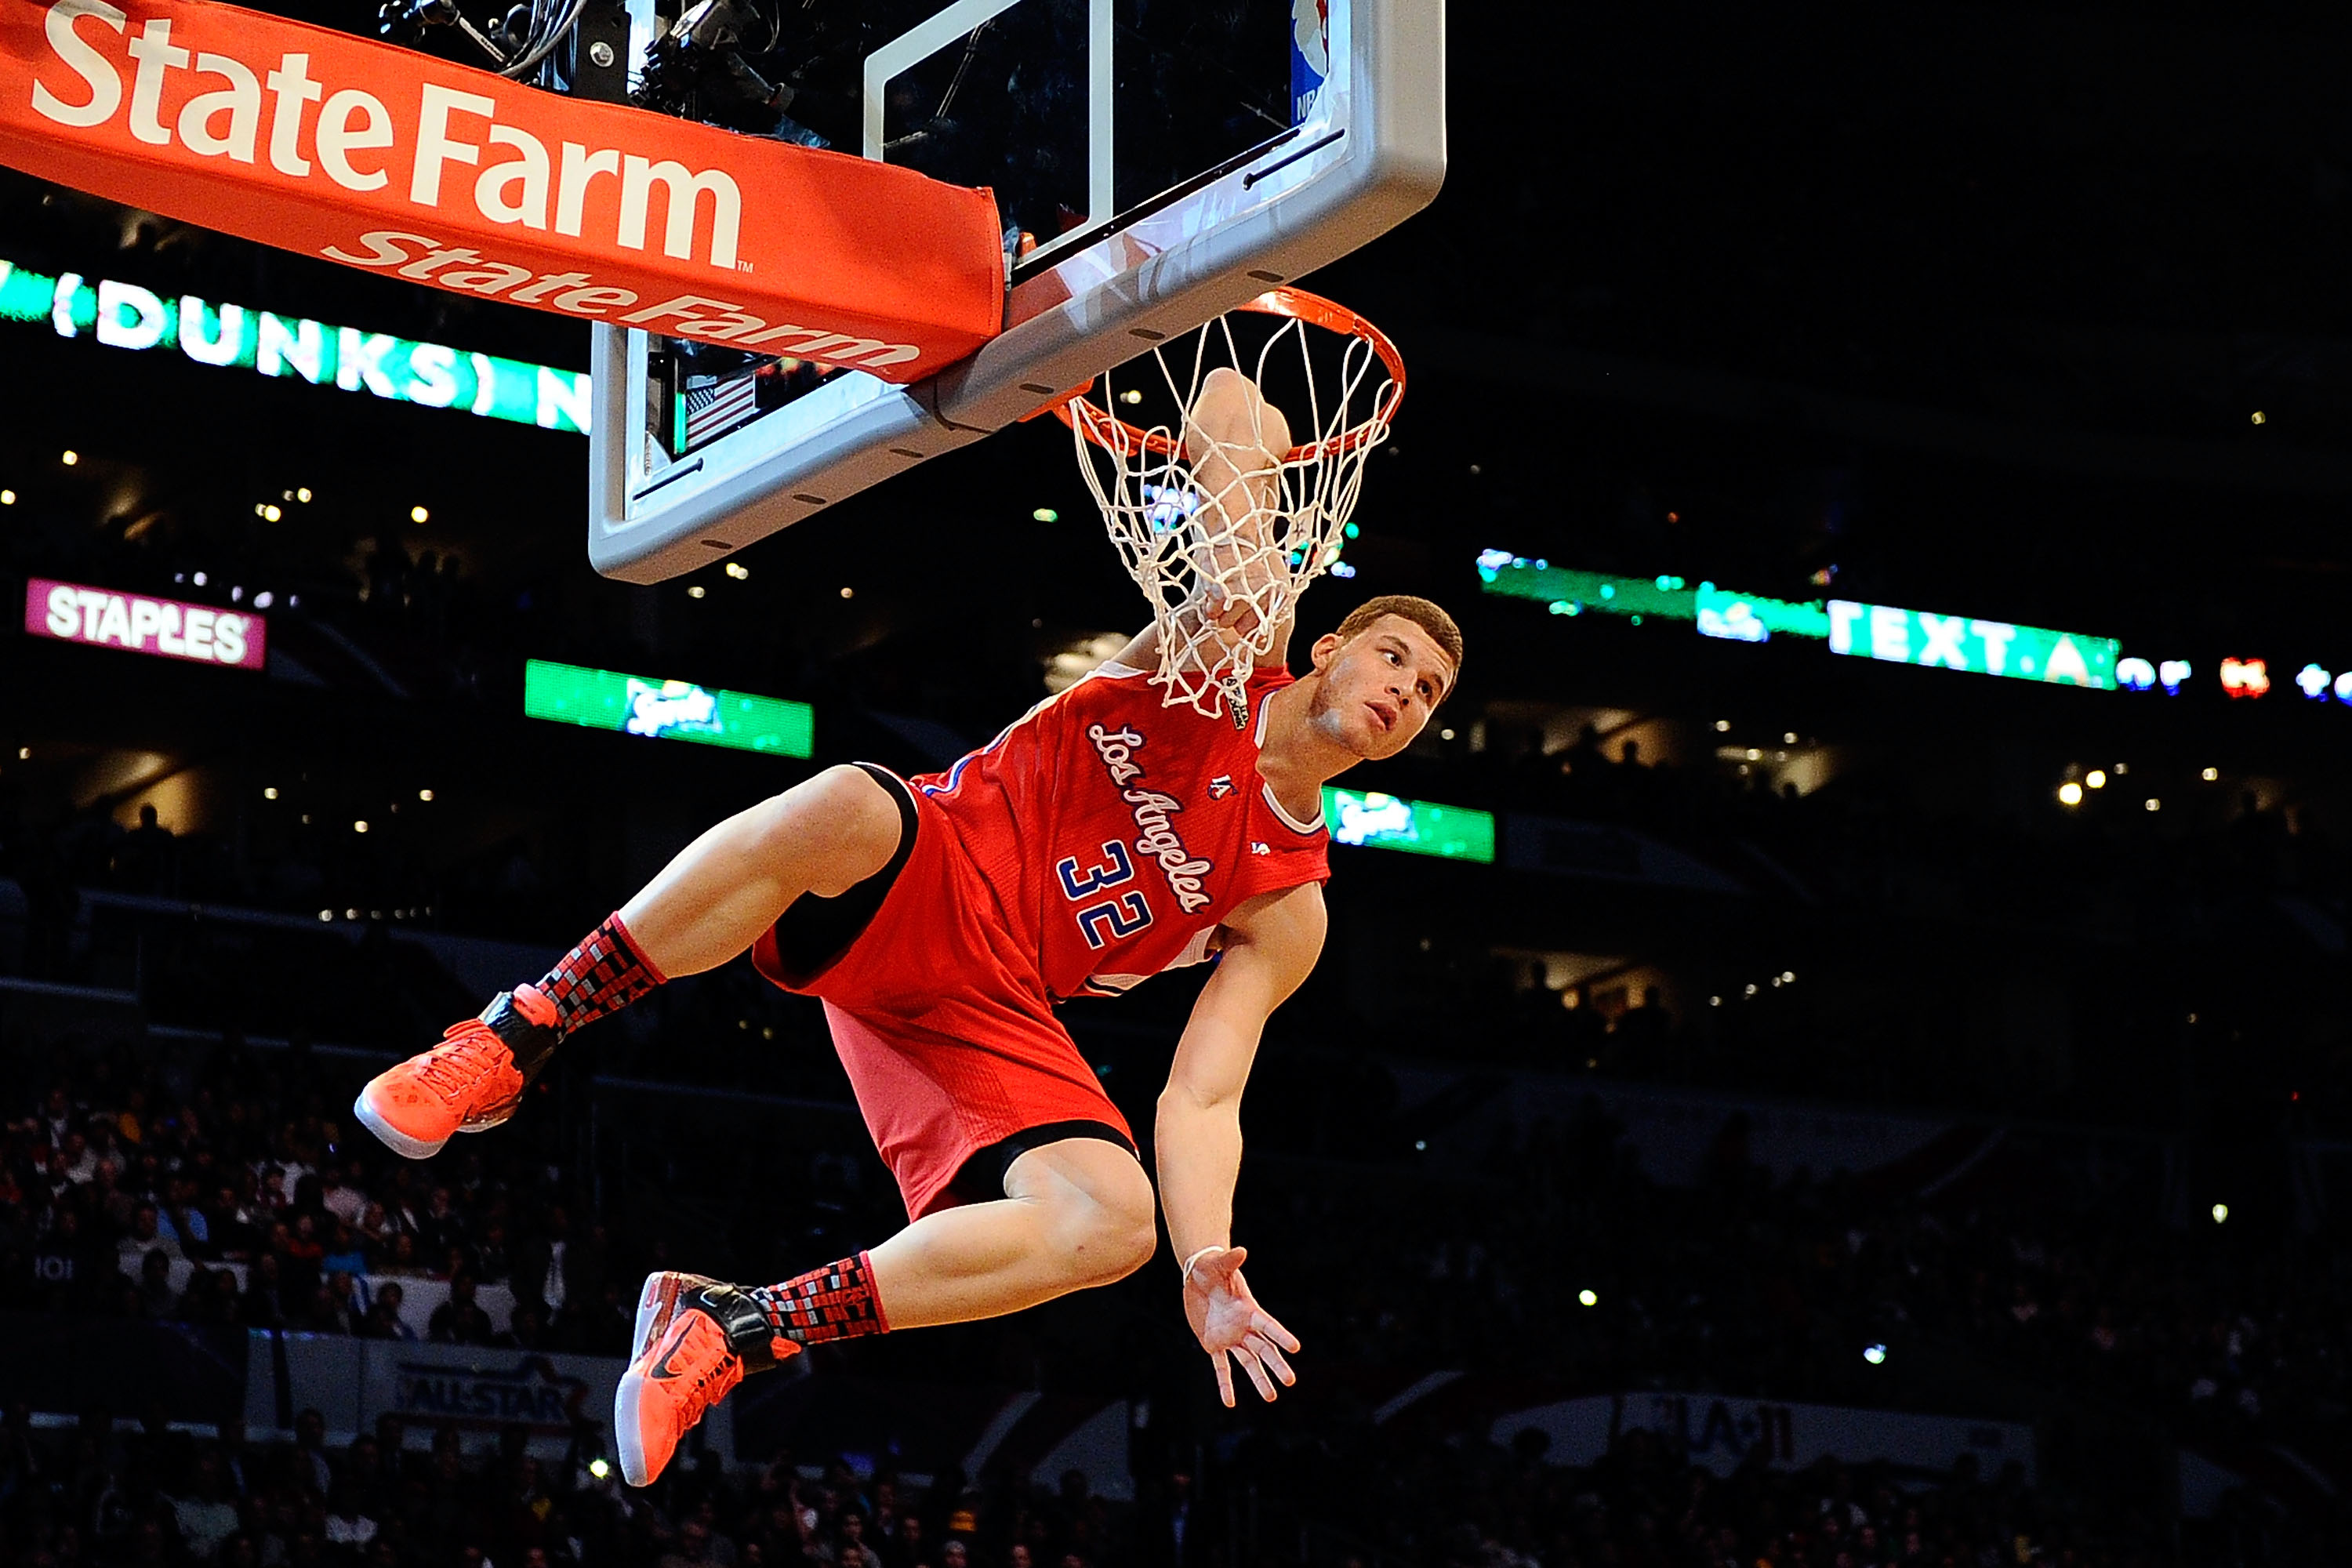 Blake Griffin #32 of the Los Angeles Clippers dunks the ball as his elbow hangs on the rim in the Sprite Slam Dunk Contest apart of NBA All-Star on February 19, 2011 in Los Angeles, California. Griffin is of Haitian descendent from this father's side.